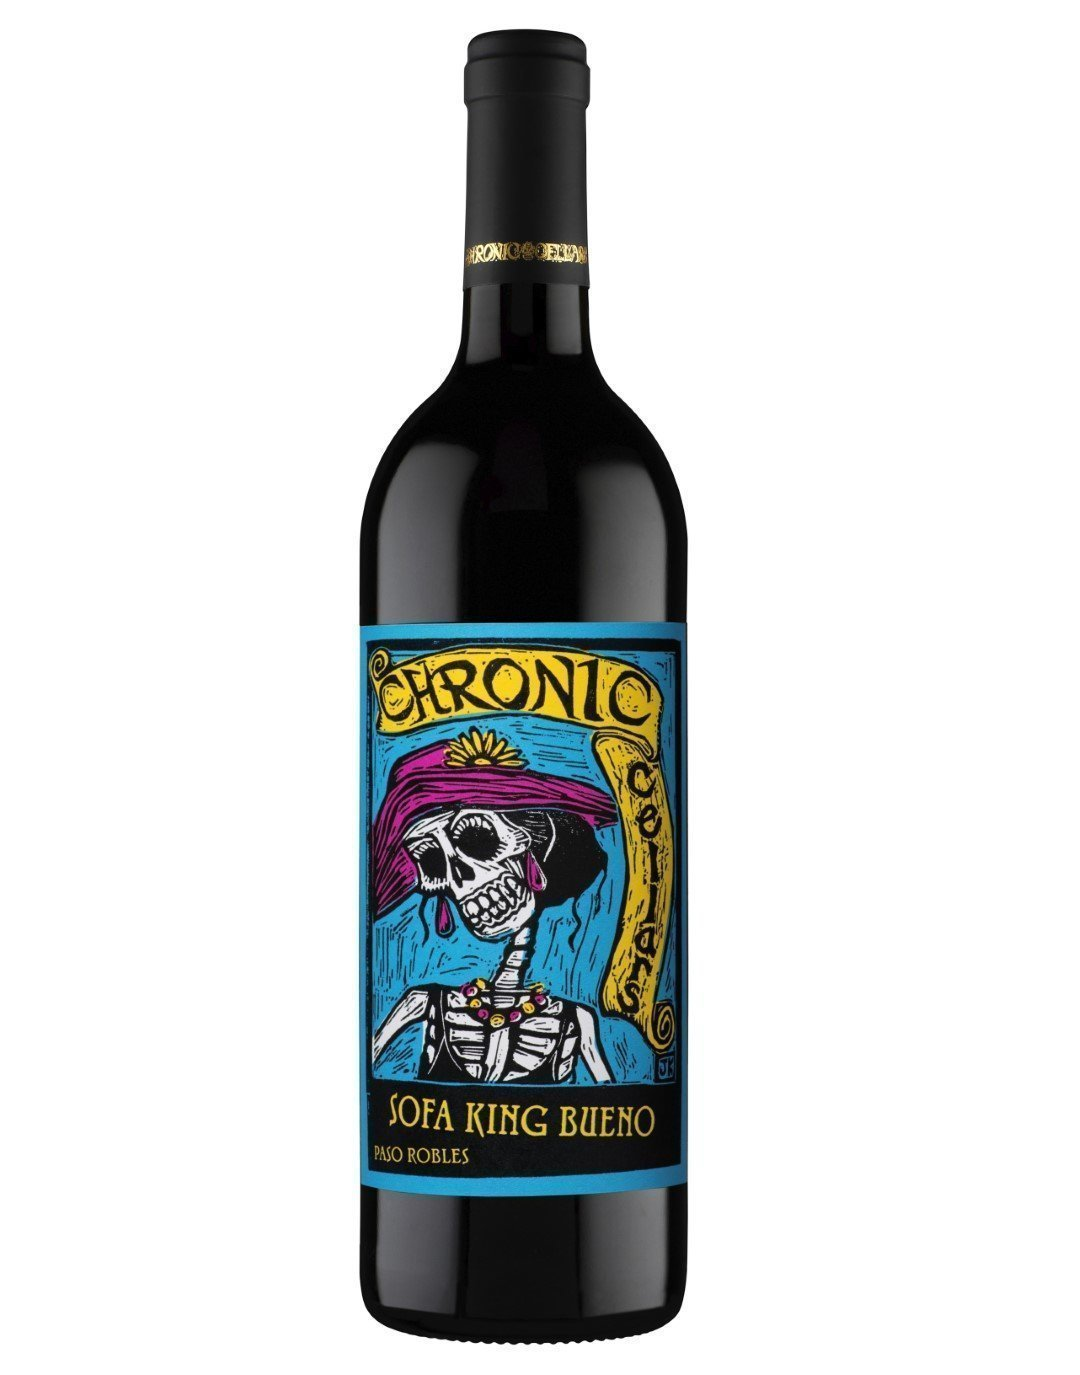 2017 Chronic Cellars Sofa King Bueno Paso Robles